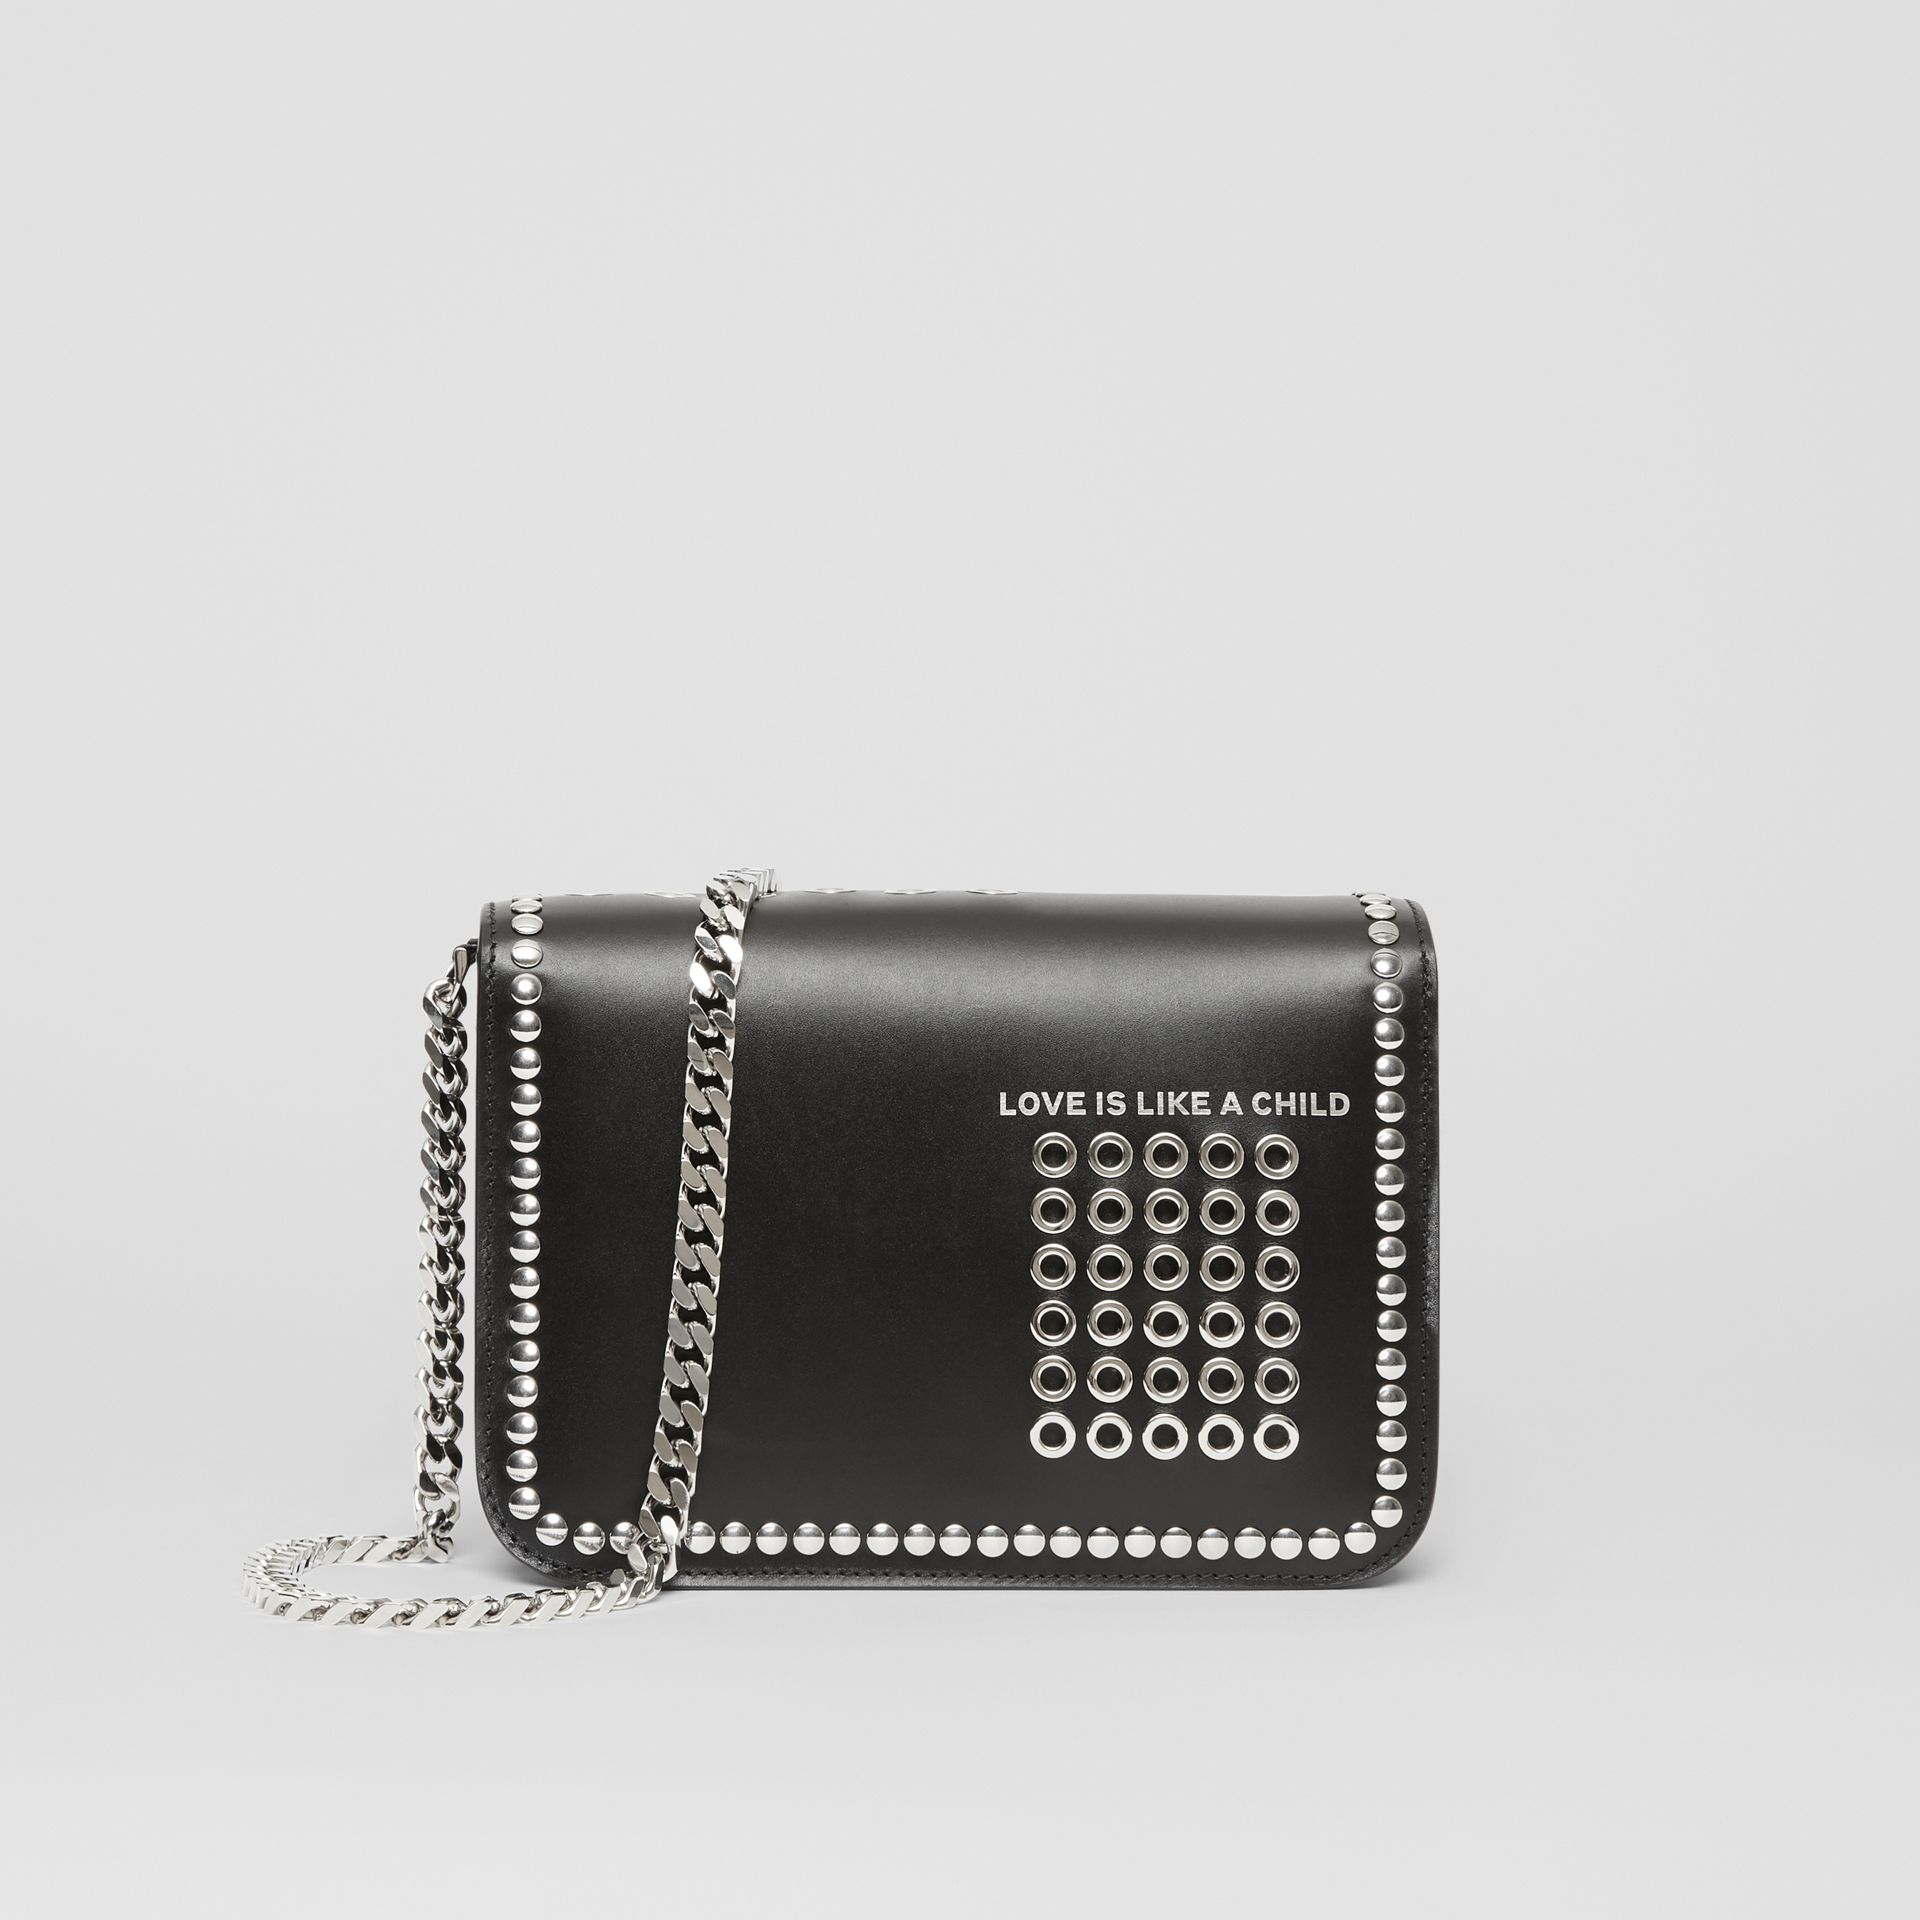 Small Studded Montage Print Leather TB Bag in Black - Women | Burberry United Kingdom - gallery image 7